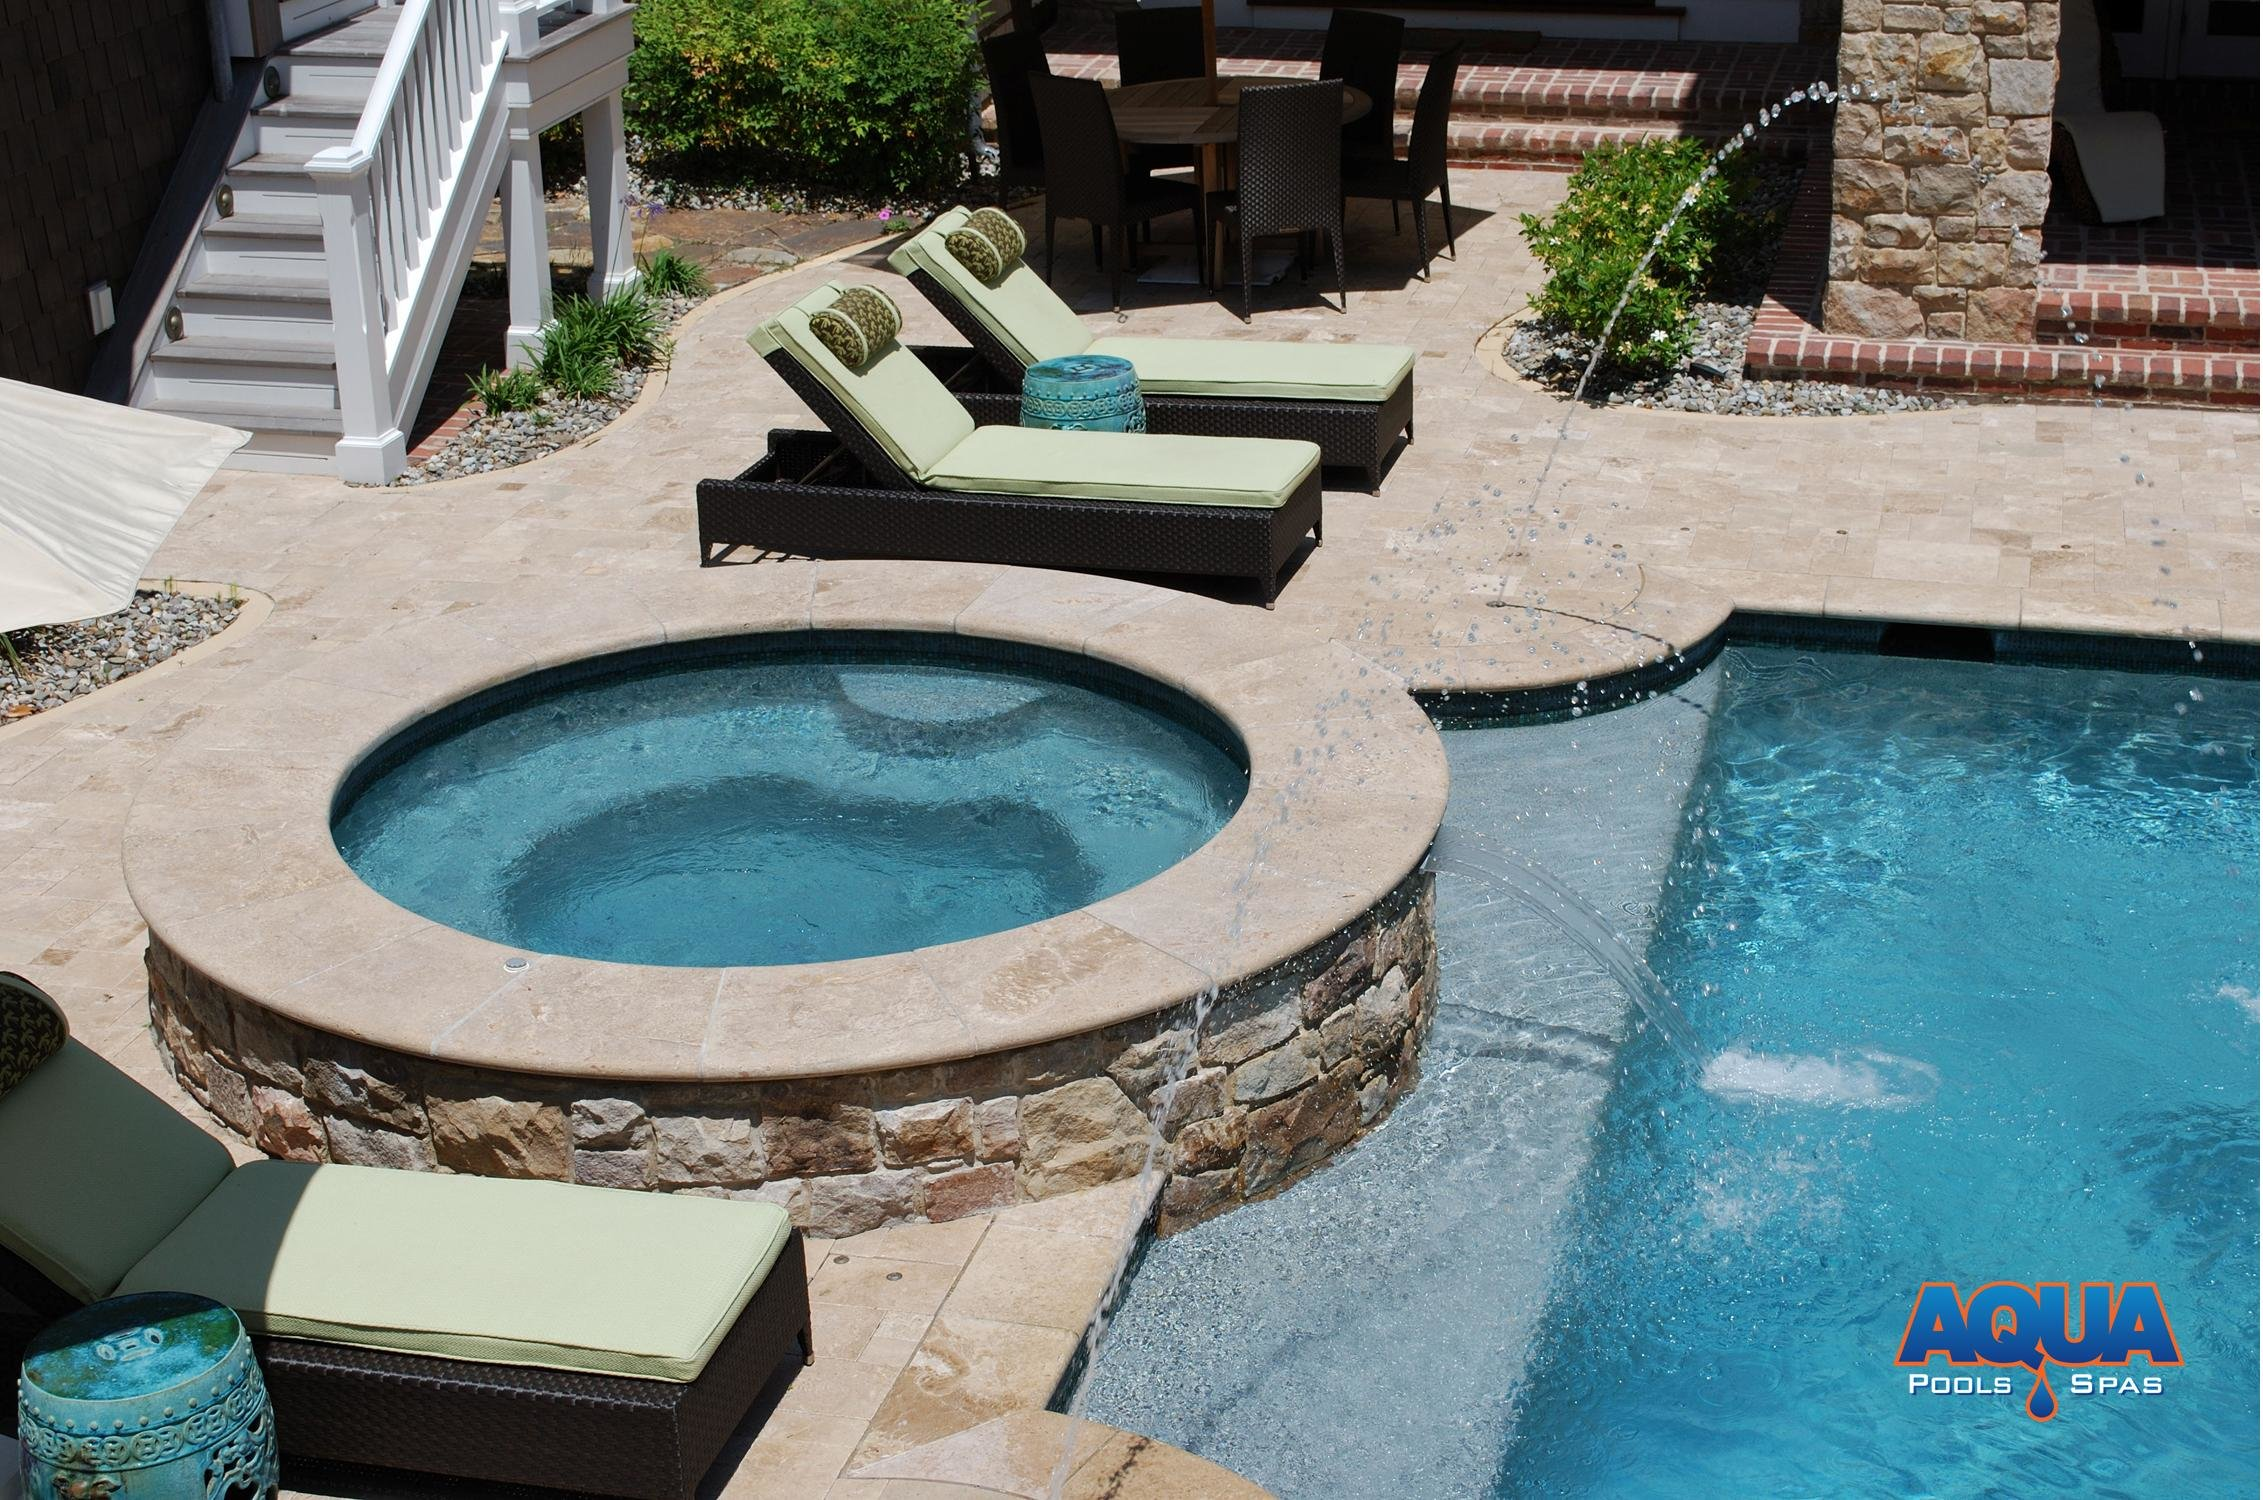 Custom spas custom gunite hot tubs aqua pools spas for Pool design with hot tub